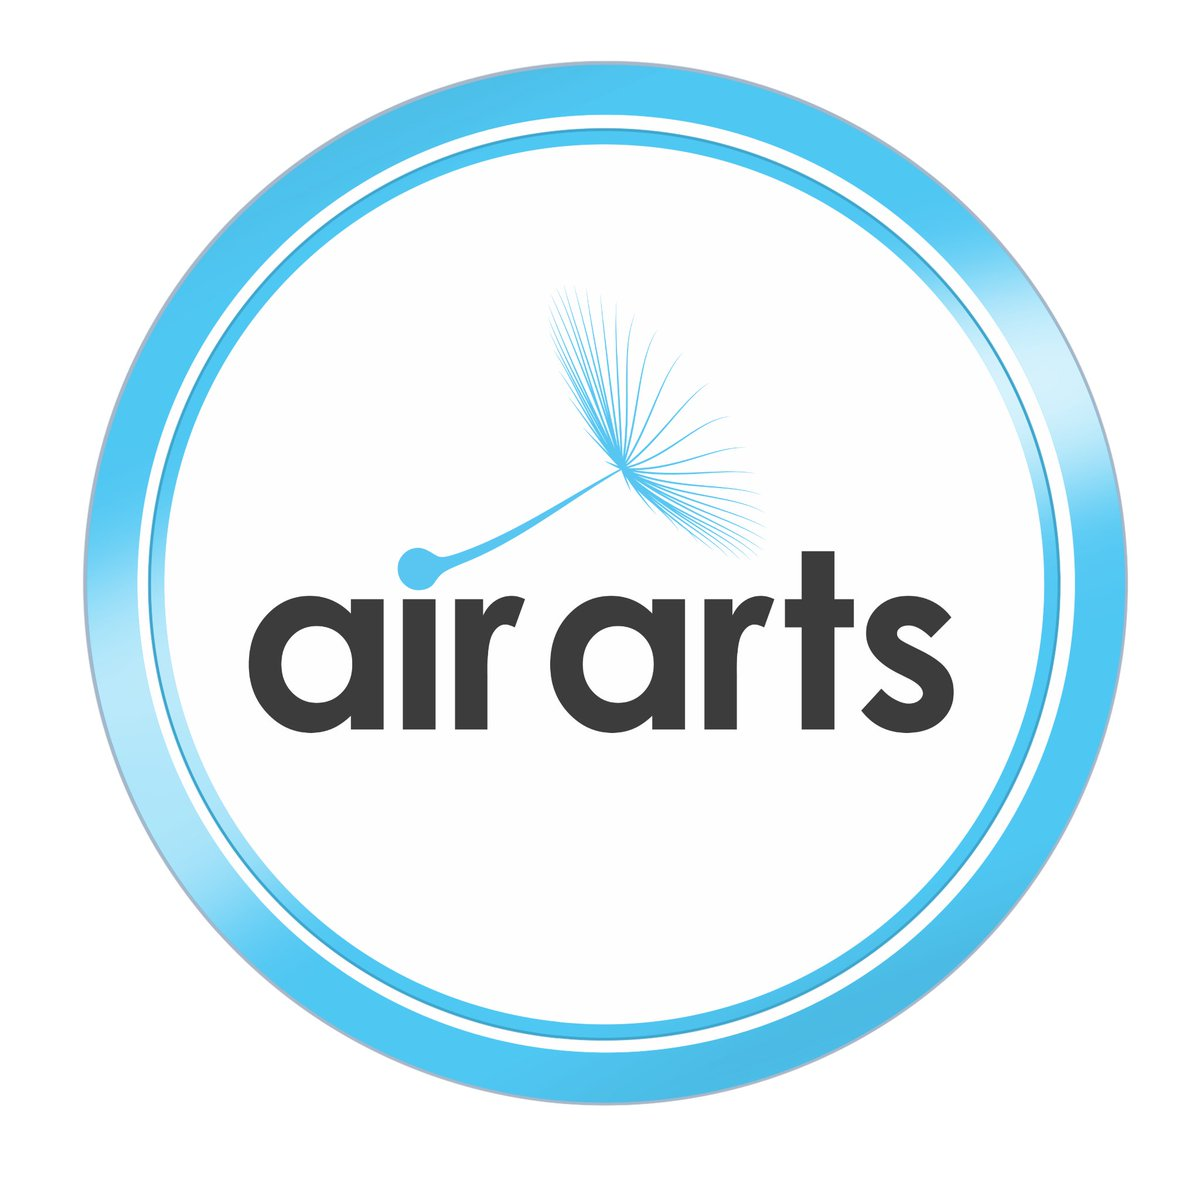 Today we are proud to reveal our New Air Arts Logo! 💙🤩🥳 @LauraWatersUHDB @UHDBTrust @hospitalcharity @paulvincentbro1 @CathyWinfield @gavinUHDB